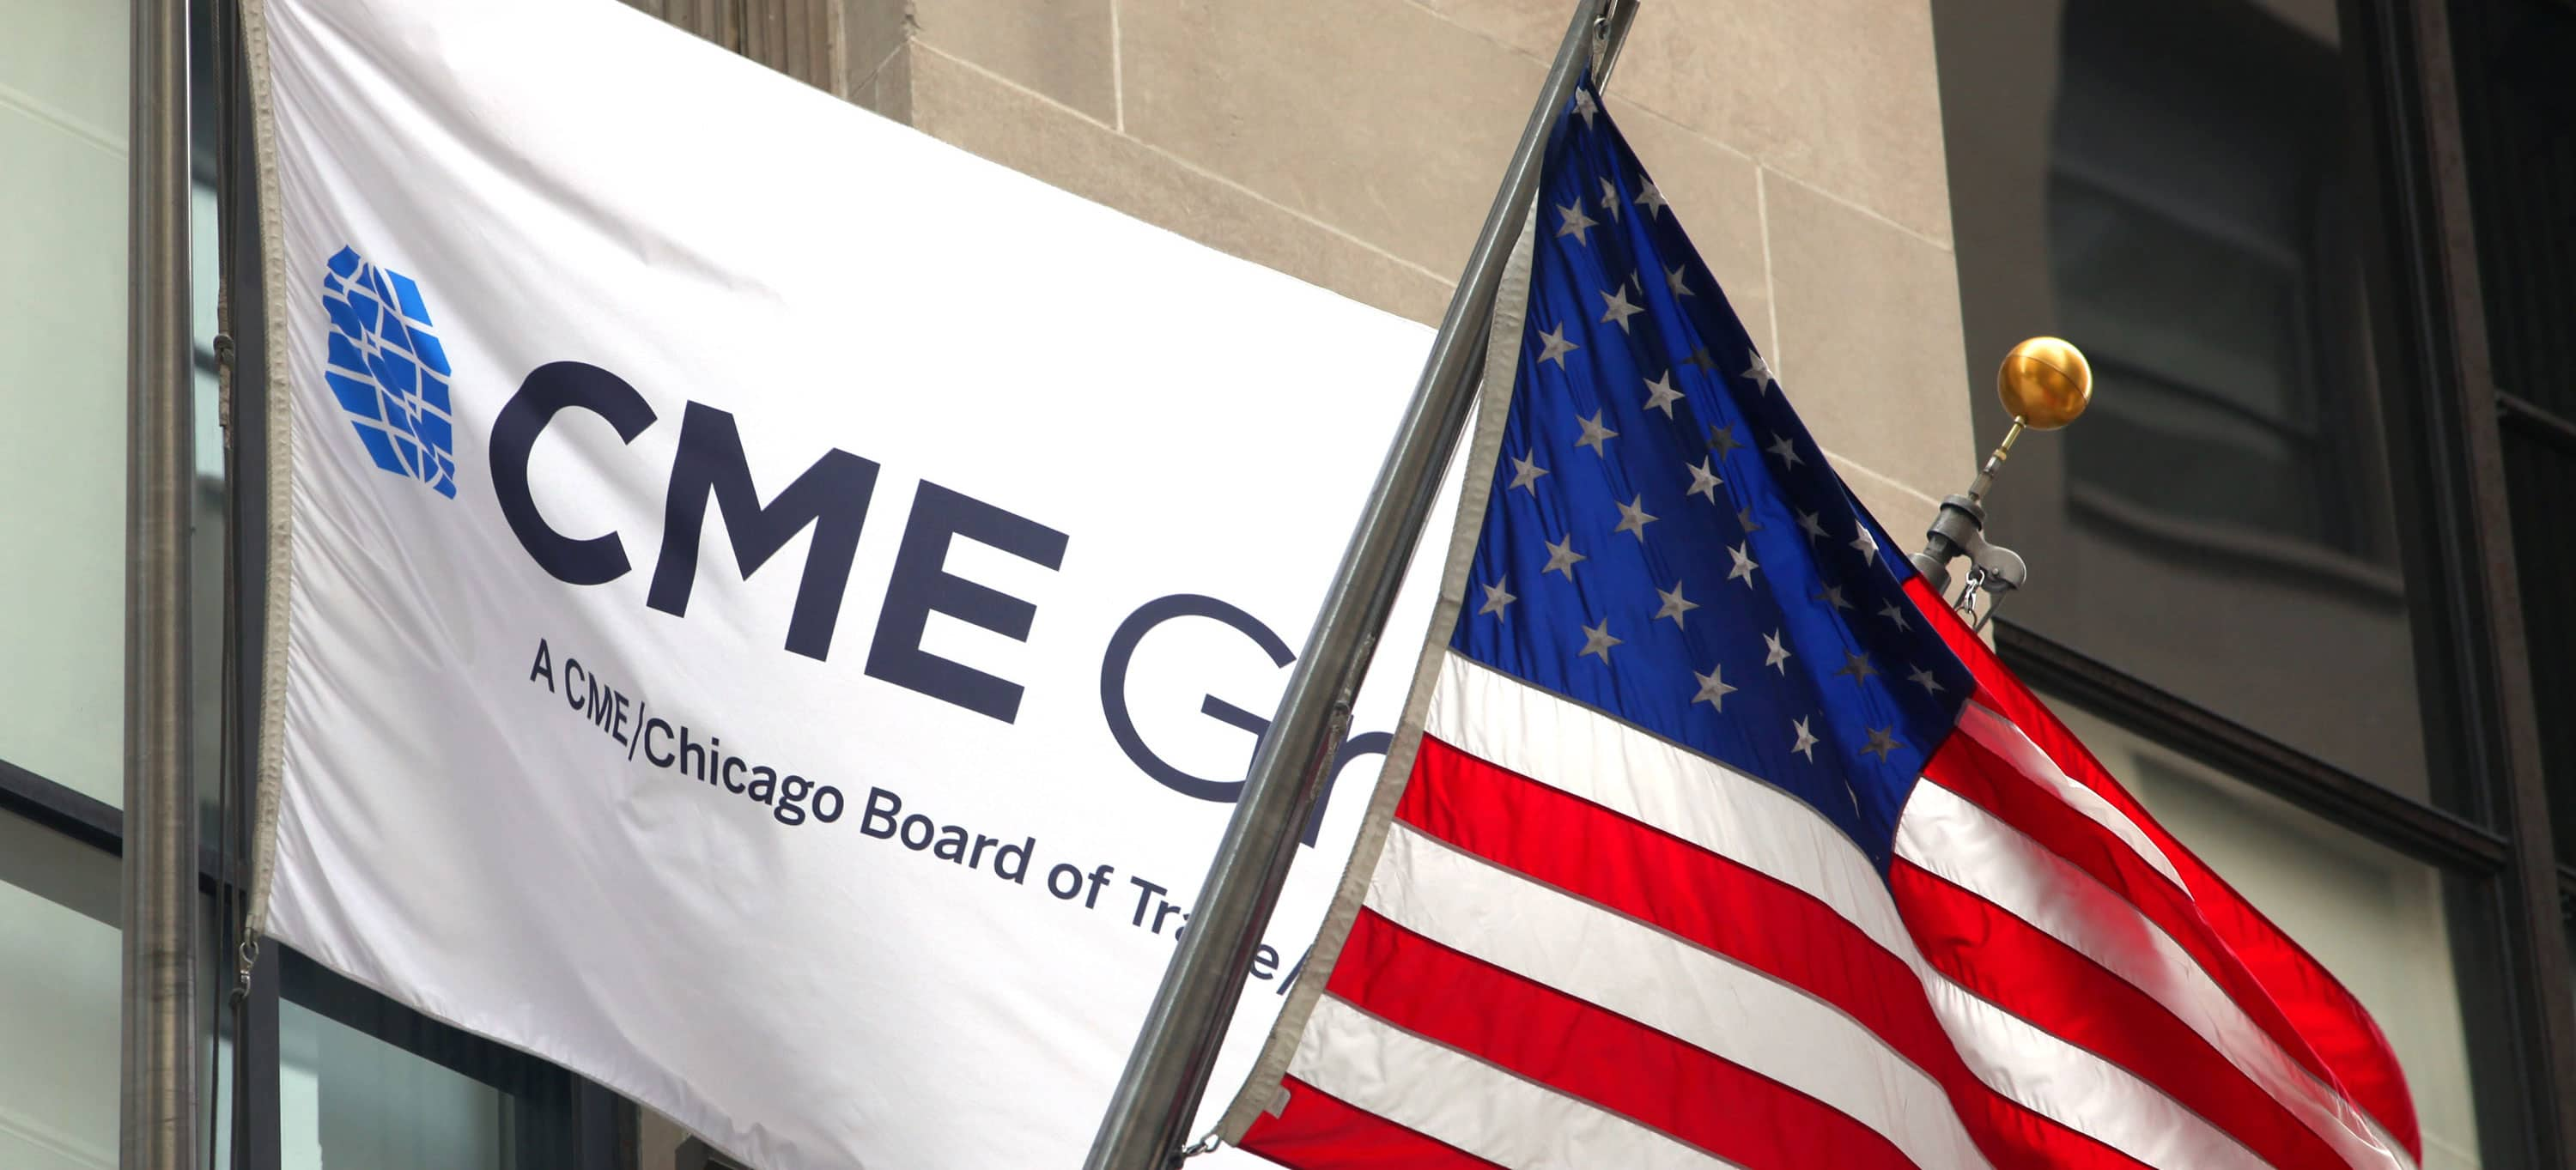 CME Clearing Europe Names Tina Hasenpusch as CEO, Replacing Lee Betsill